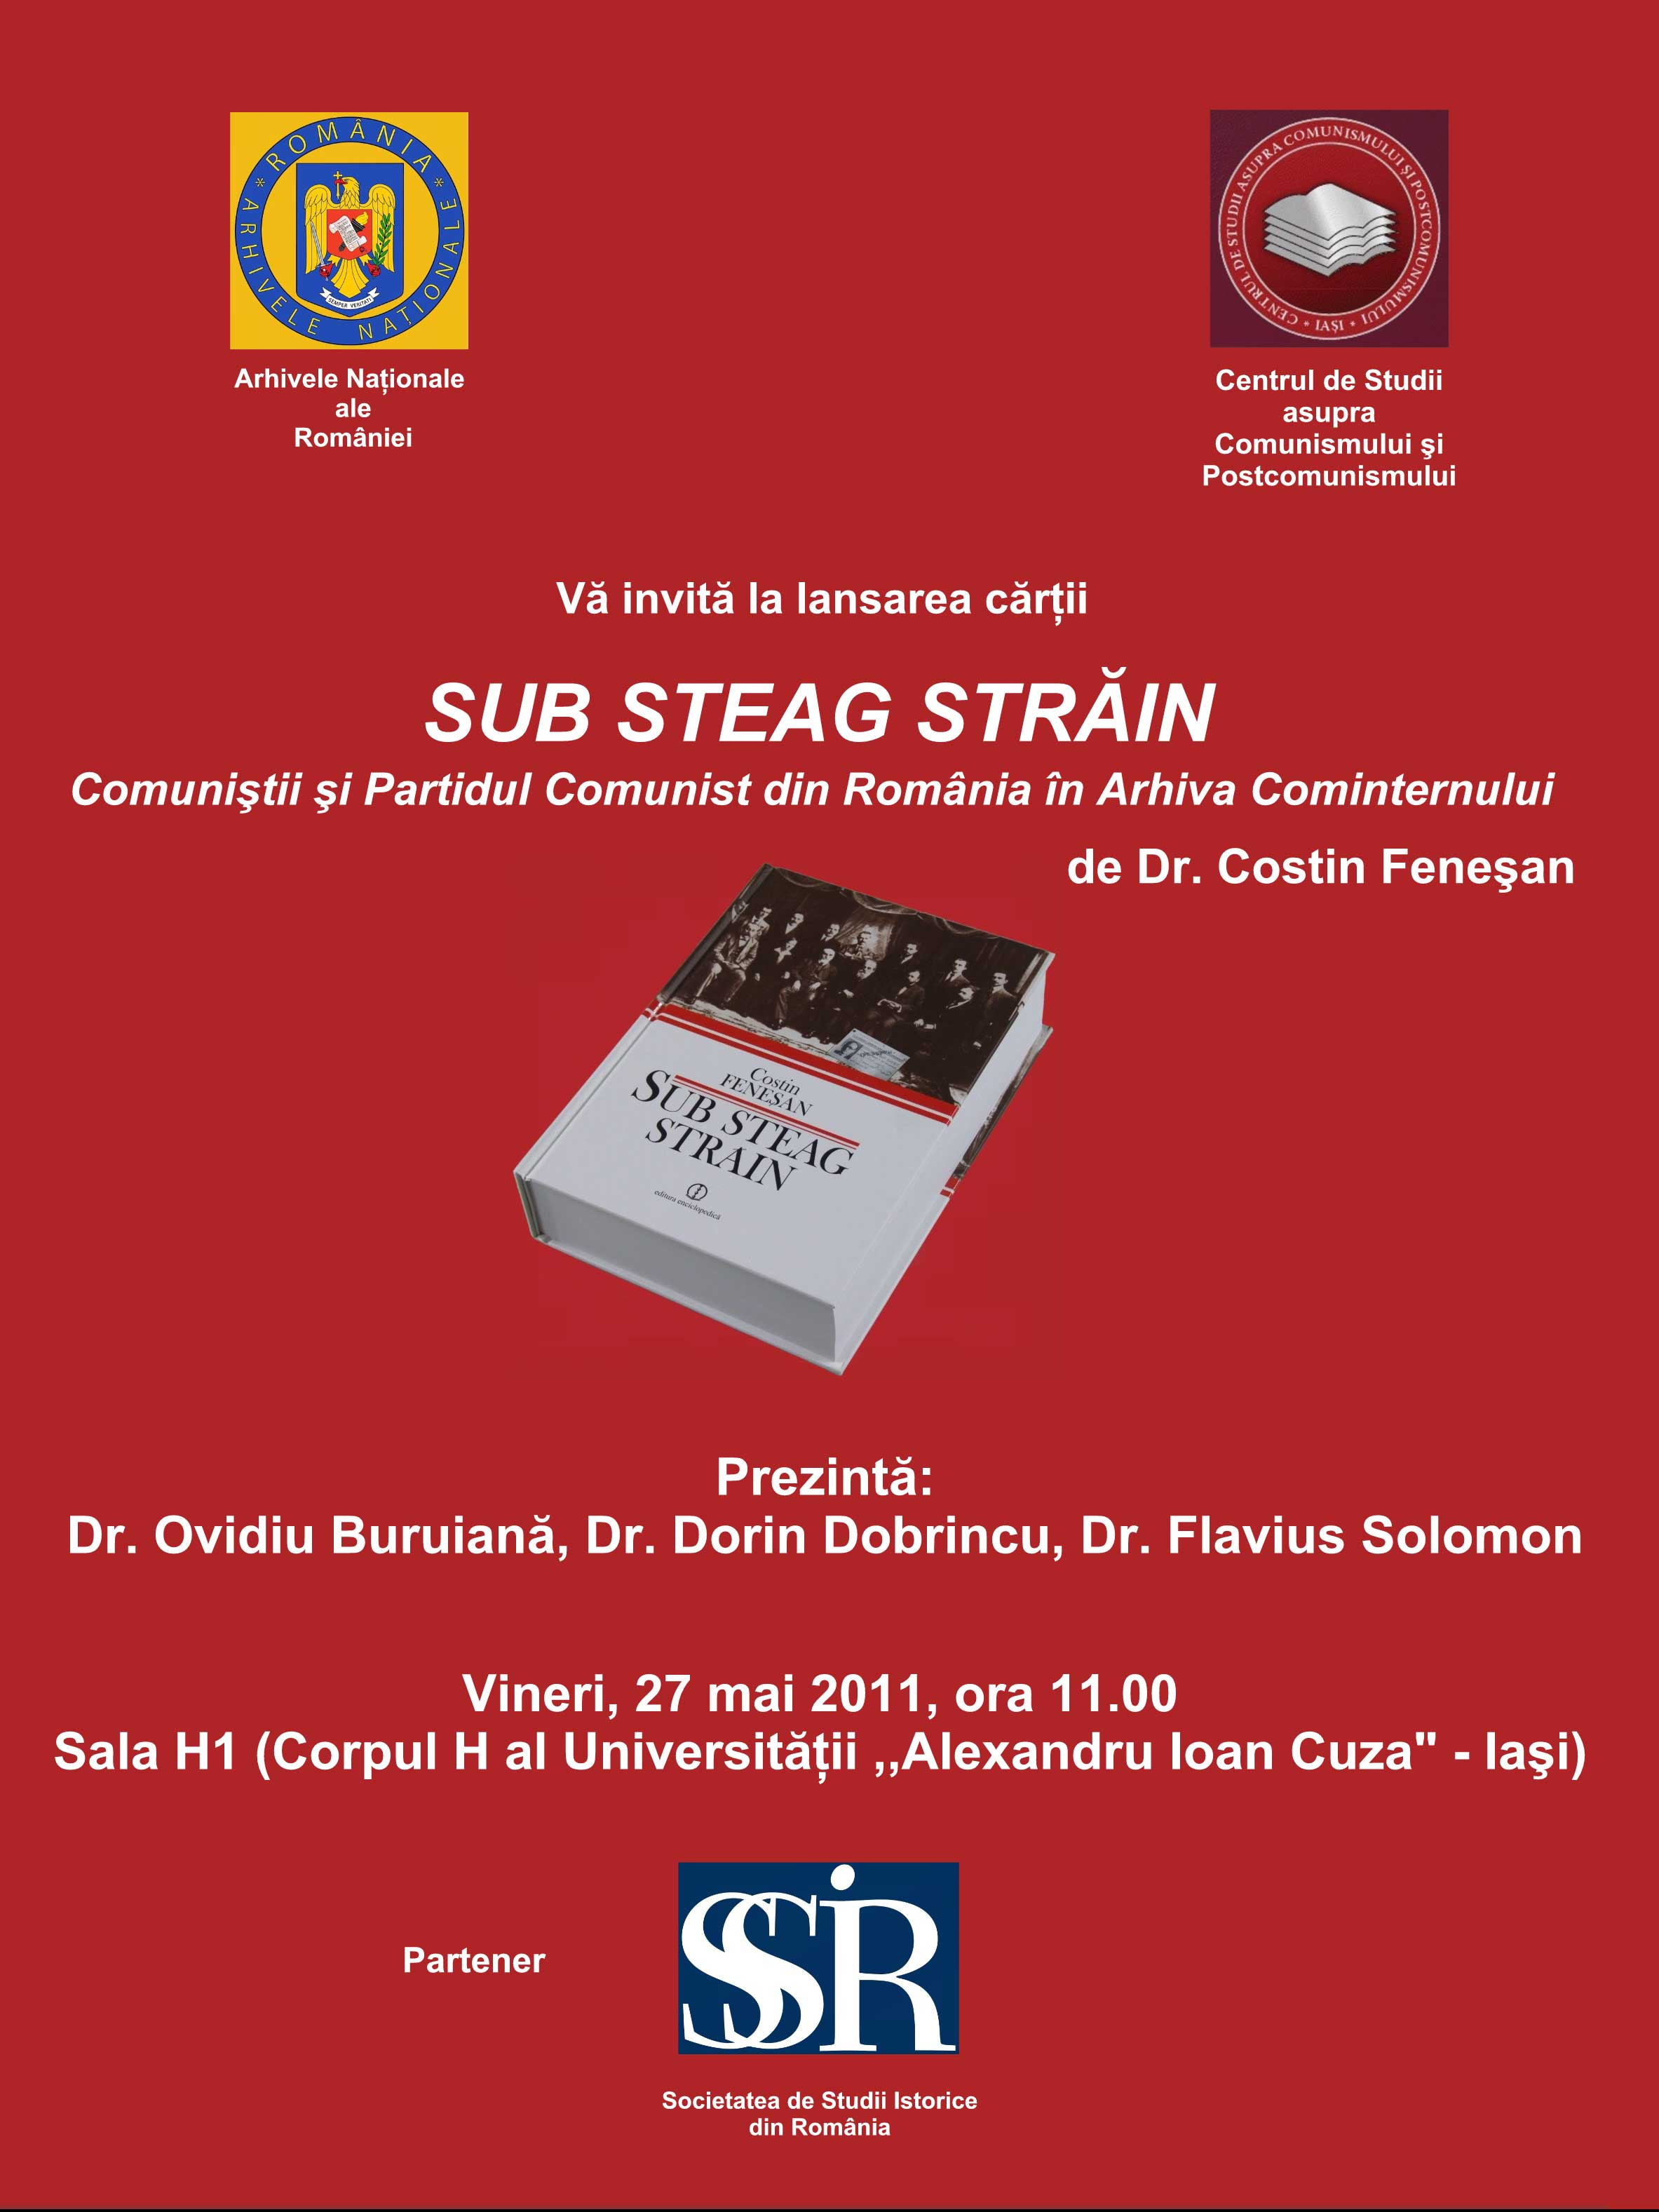 Launching of the book Costin Feneșan (ed.), Sub steag străin. Comuniştii şi Partidul Comunist din România în arhiva Kominternului (1919-1924) [Under Foreign Flags. Communists and the Communist Party in Romania in the Komintern Archives (1919-1924)]